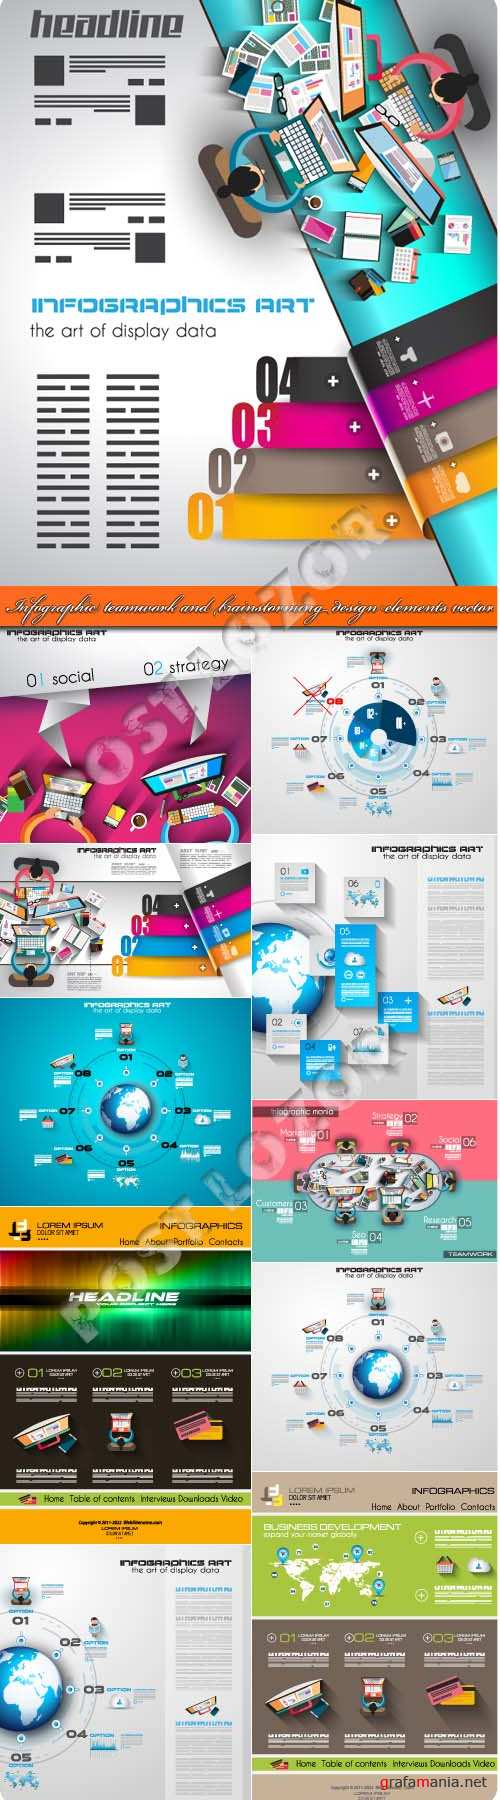 Infographic teamwork and brainstorming design elements vector